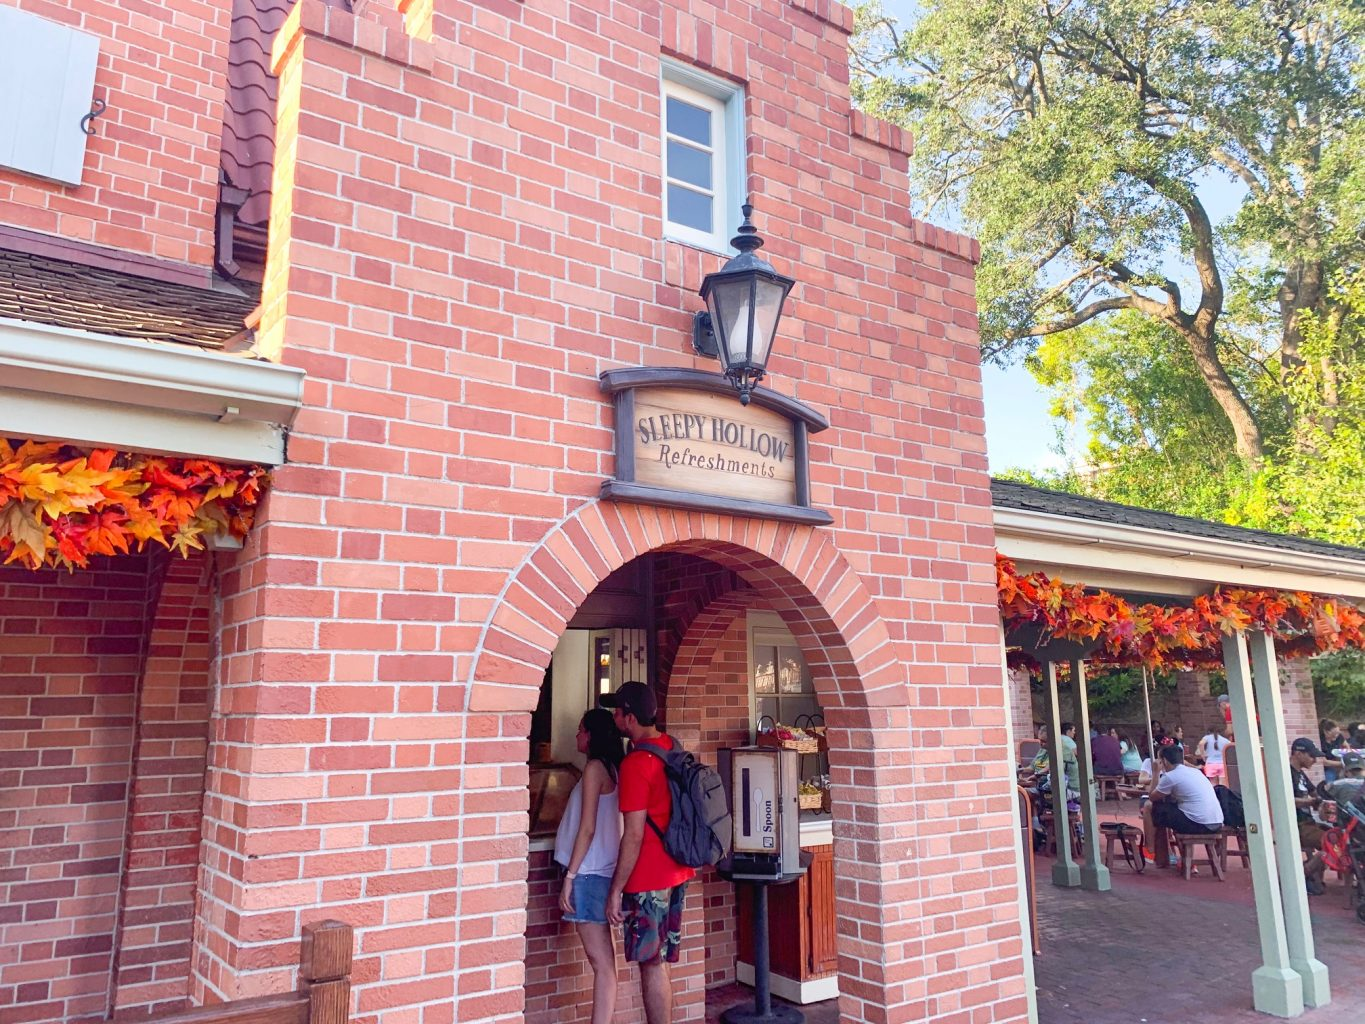 The charming brick exterior of Sleepy Hollow Refreshments